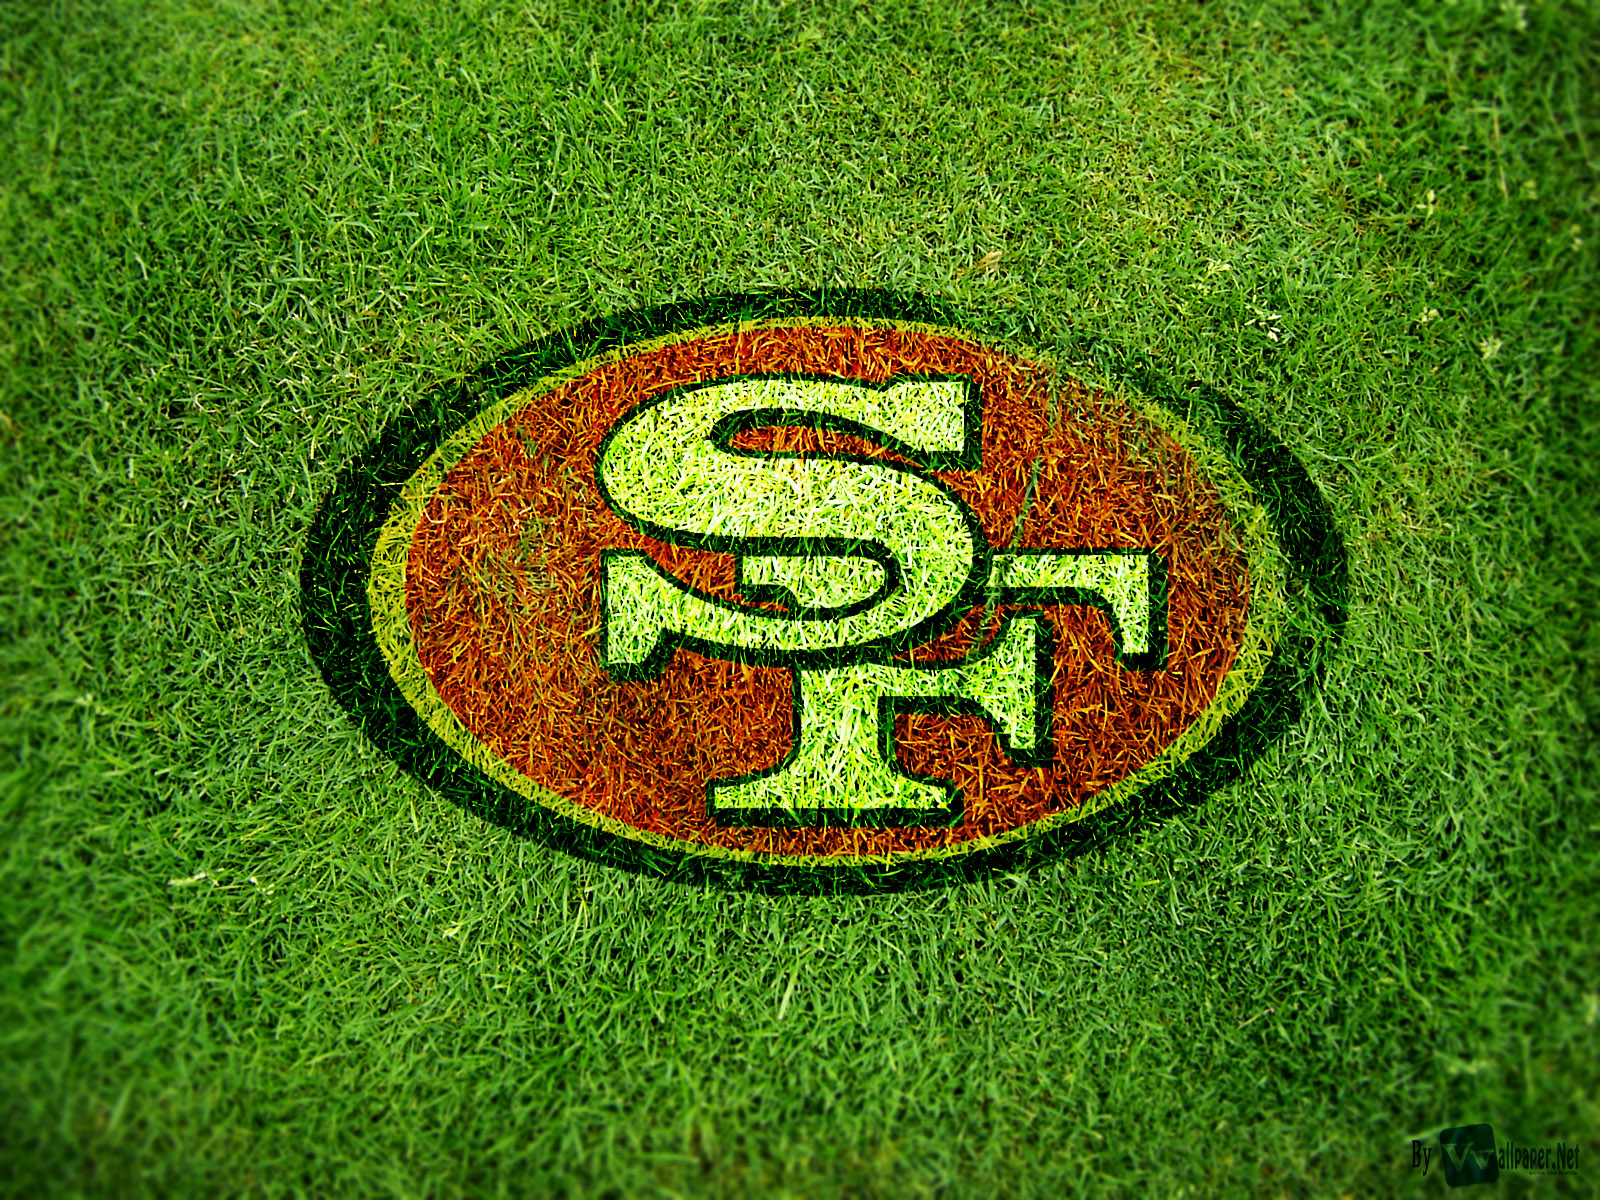 http://1.bp.blogspot.com/-EUu2oSsJd2M/UIGZYlDraZI/AAAAAAAAFi8/5vyWvo2hhBo/s1600/San-Francisco-49ers-Logo-on-Grass-HD-Wallpaper_by_Vvallpaper.Net.jpg